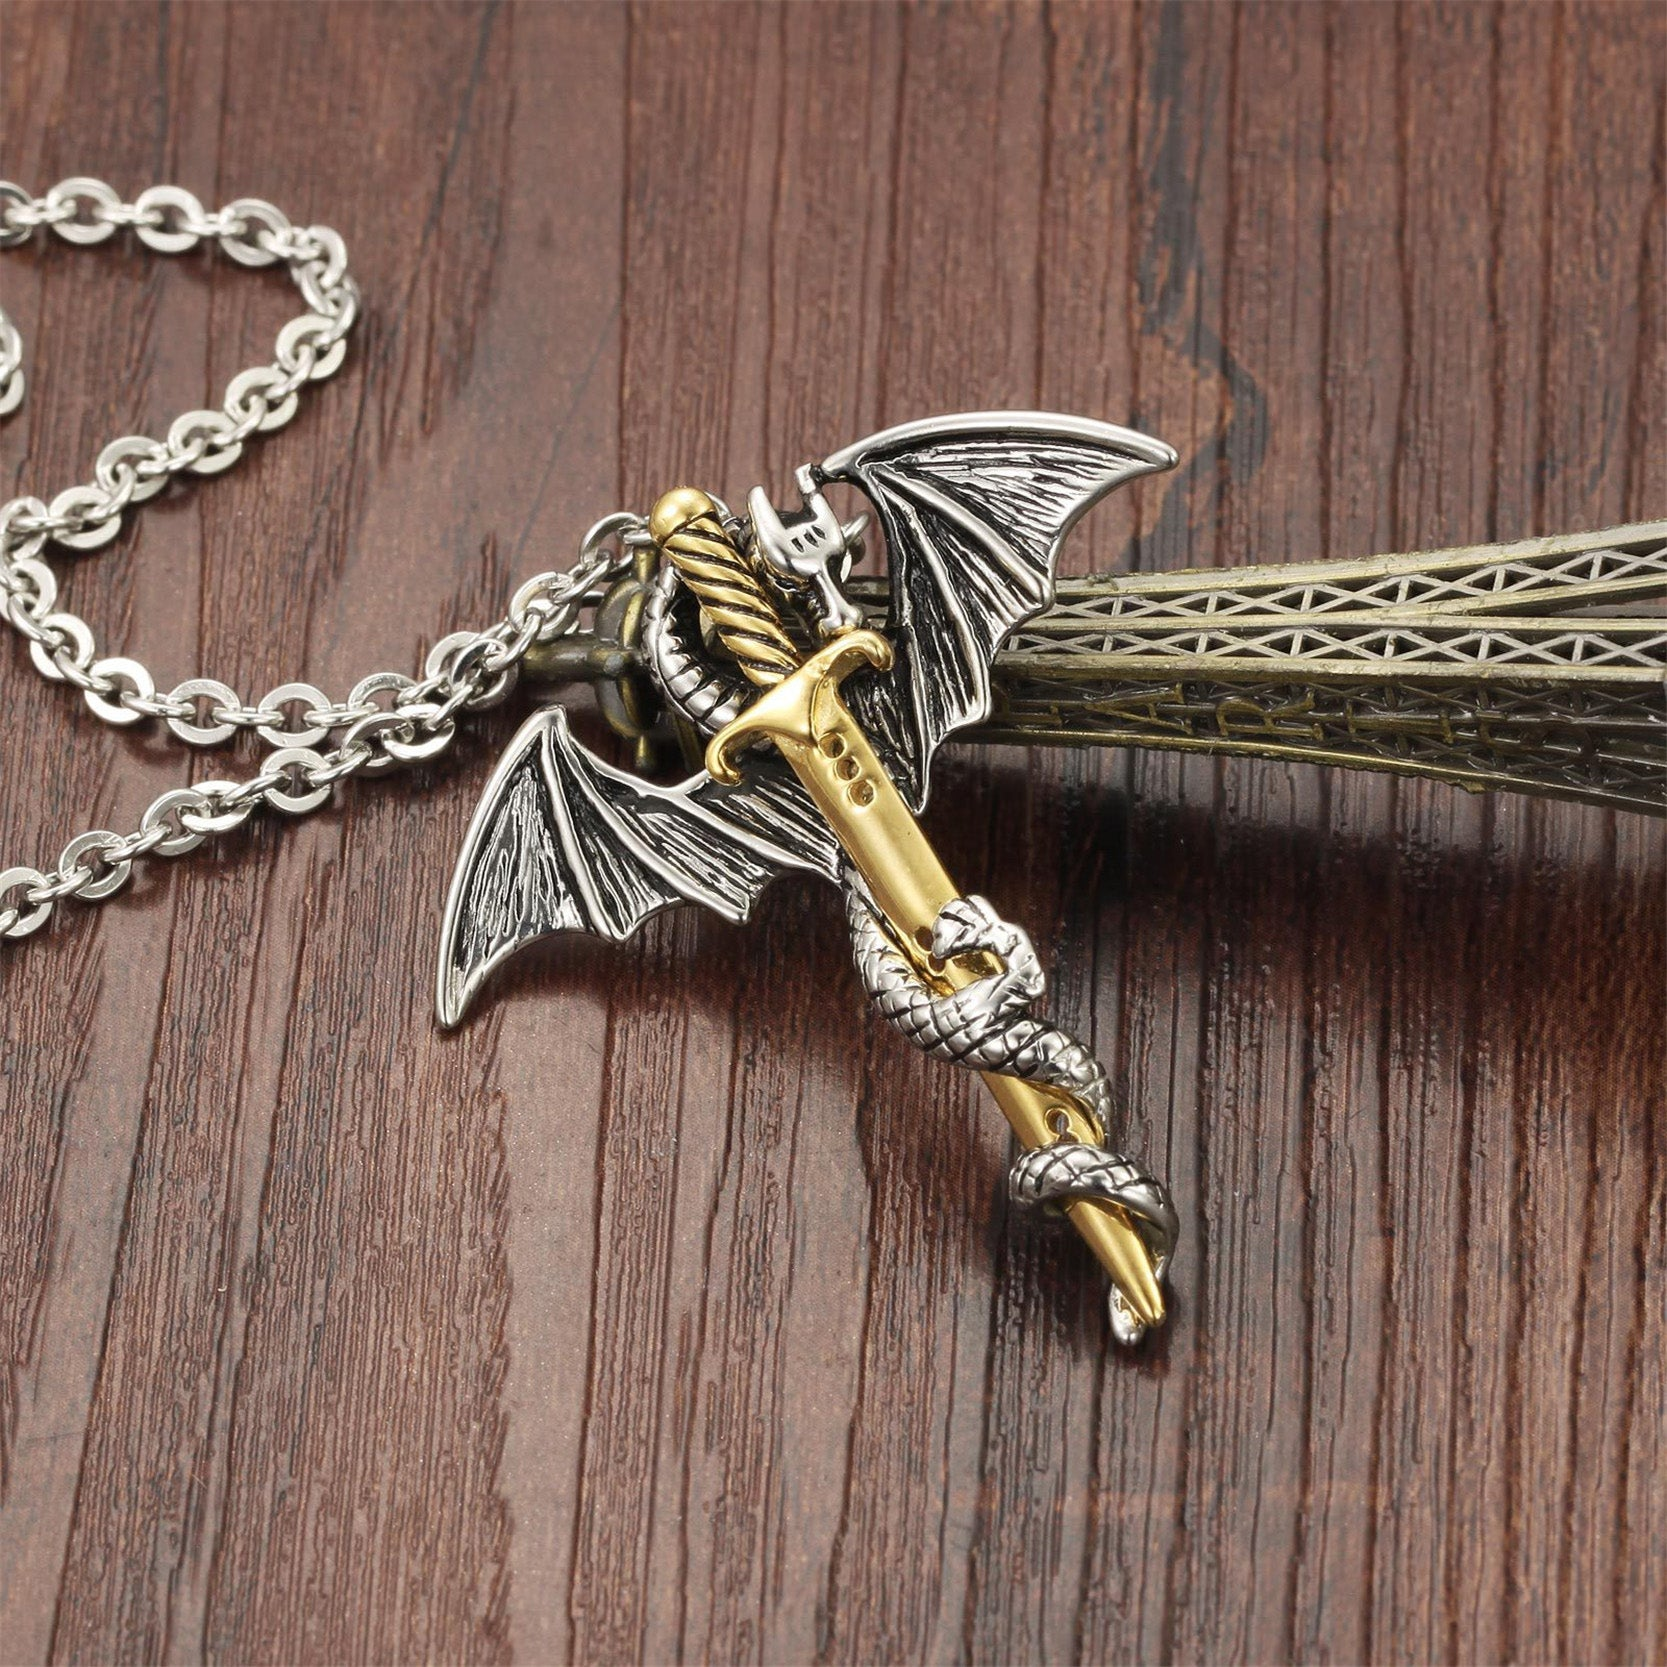 Silver or gold color dragon sword pendant necklaces punk stainless silver or gold color dragon sword pendant necklaces punk stainless steel link chain necklace aloadofball Images